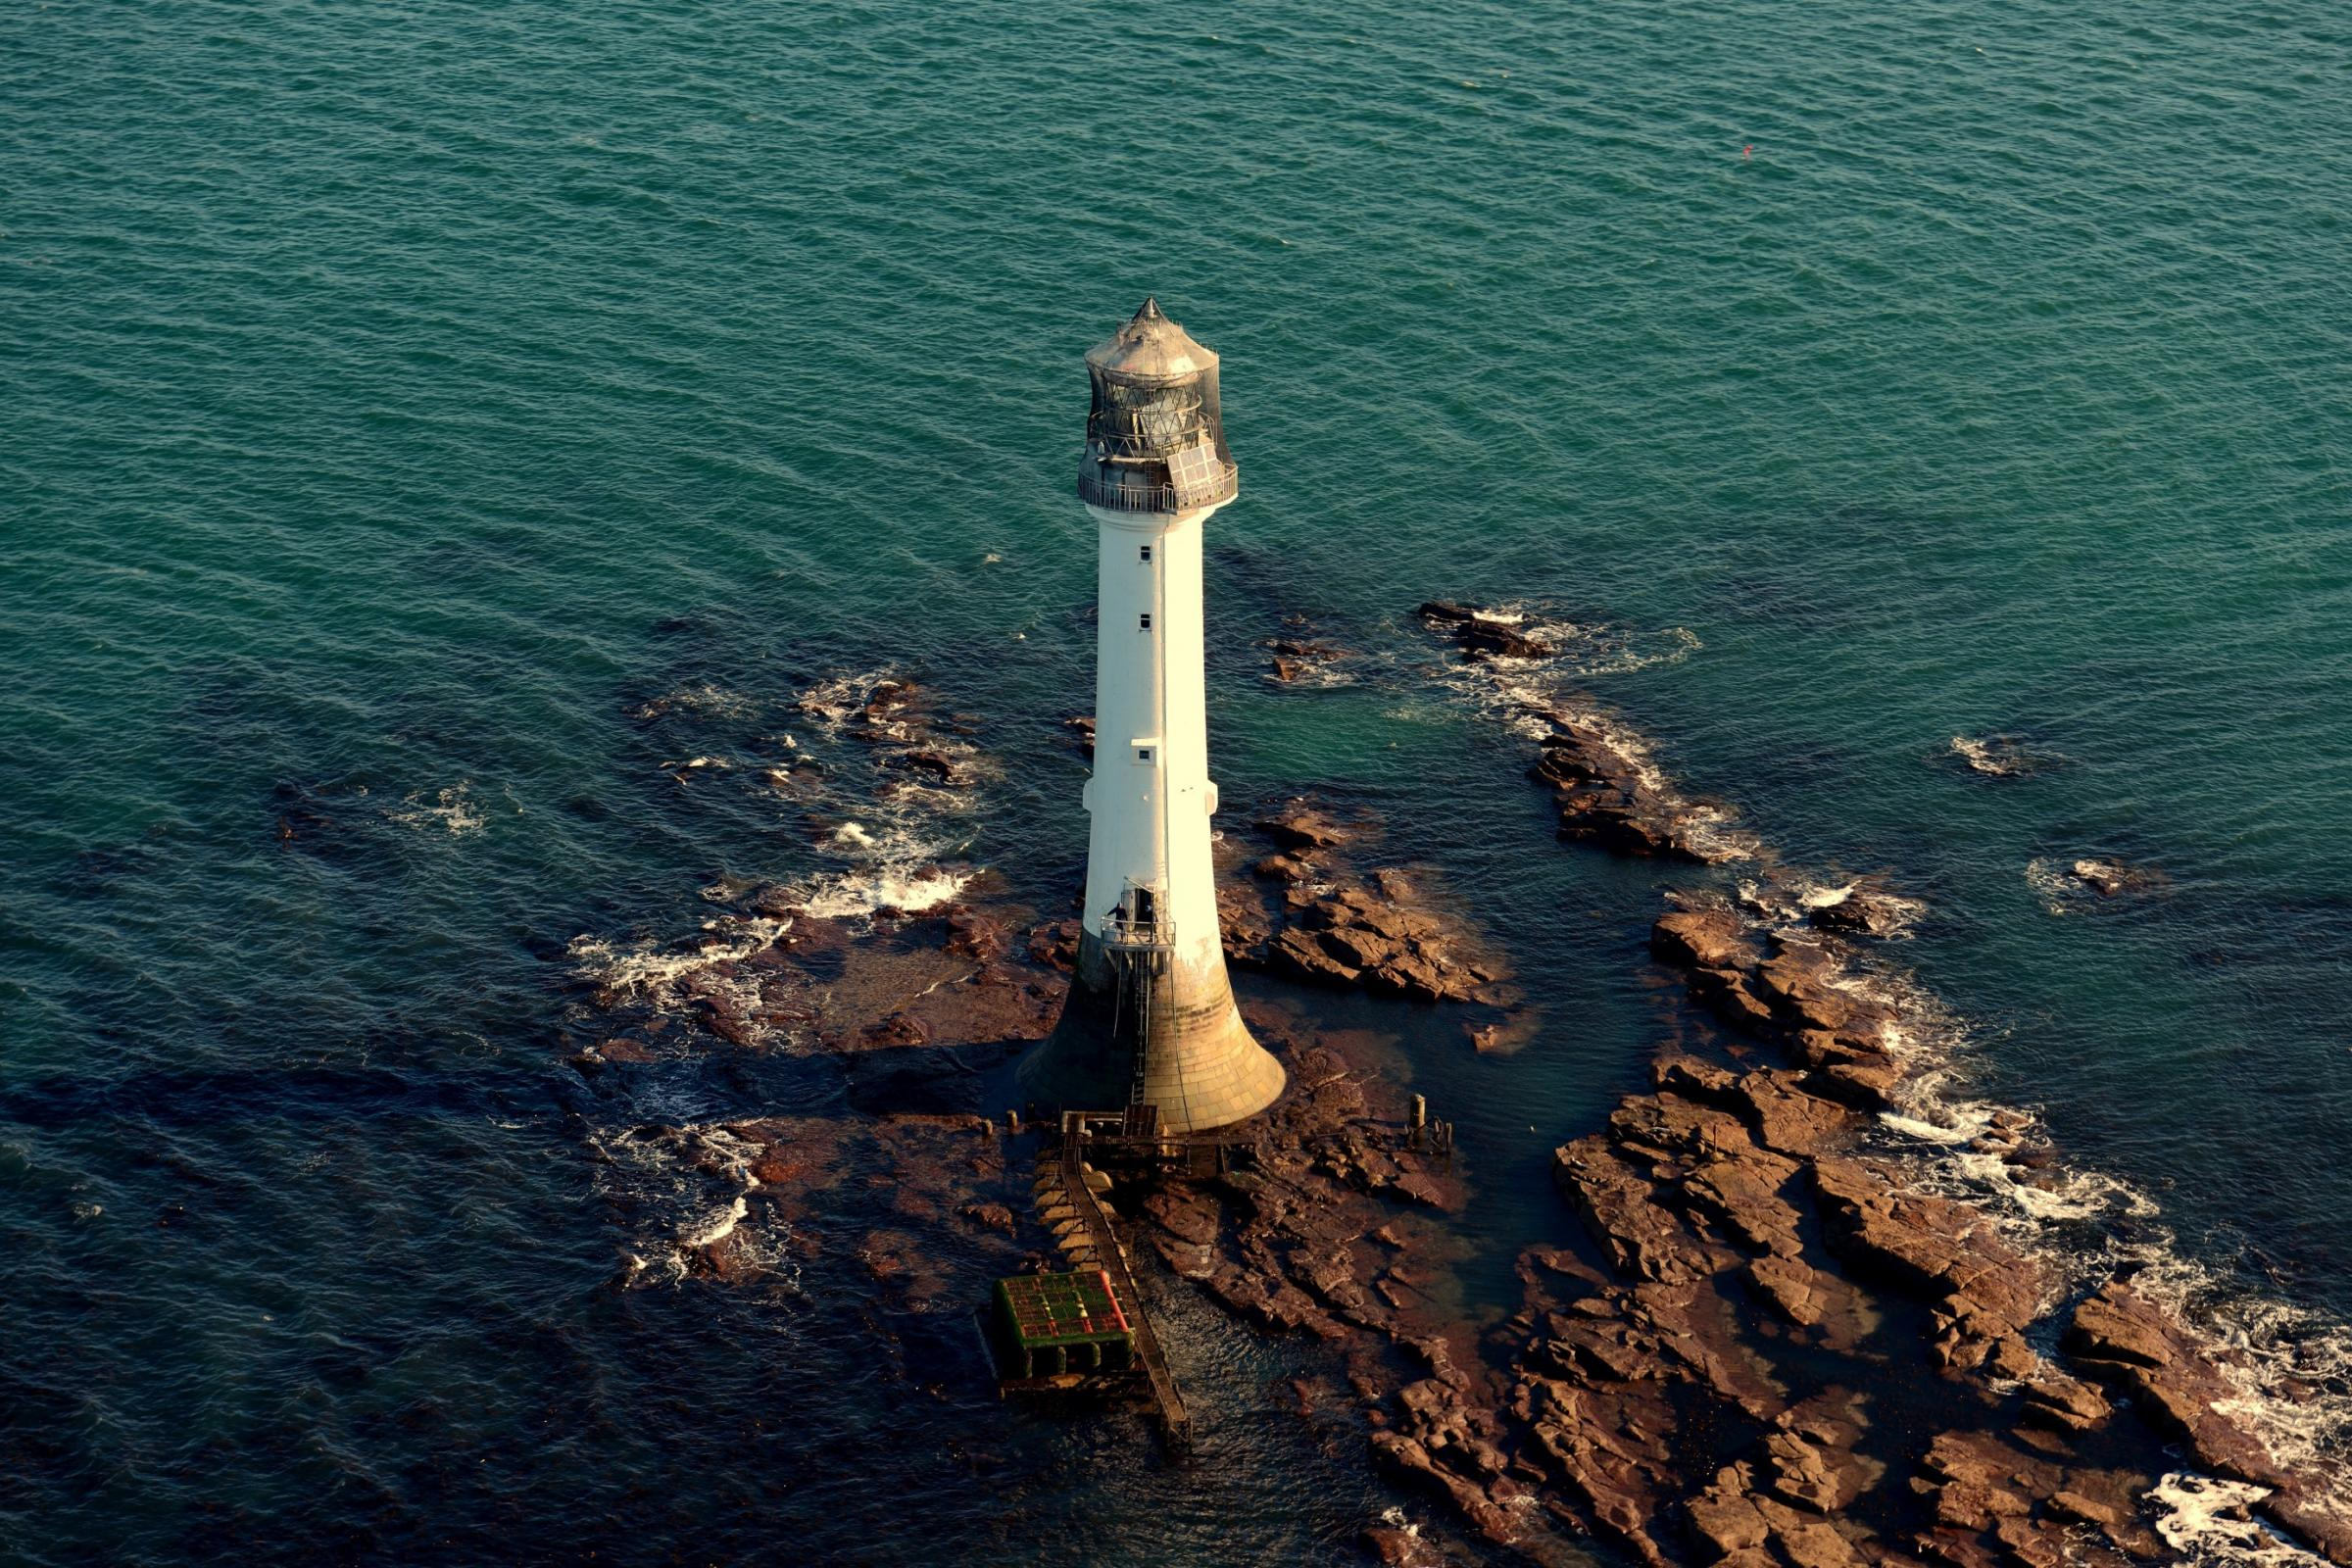 Rock stars: the family who built Scotland's great lighthouses